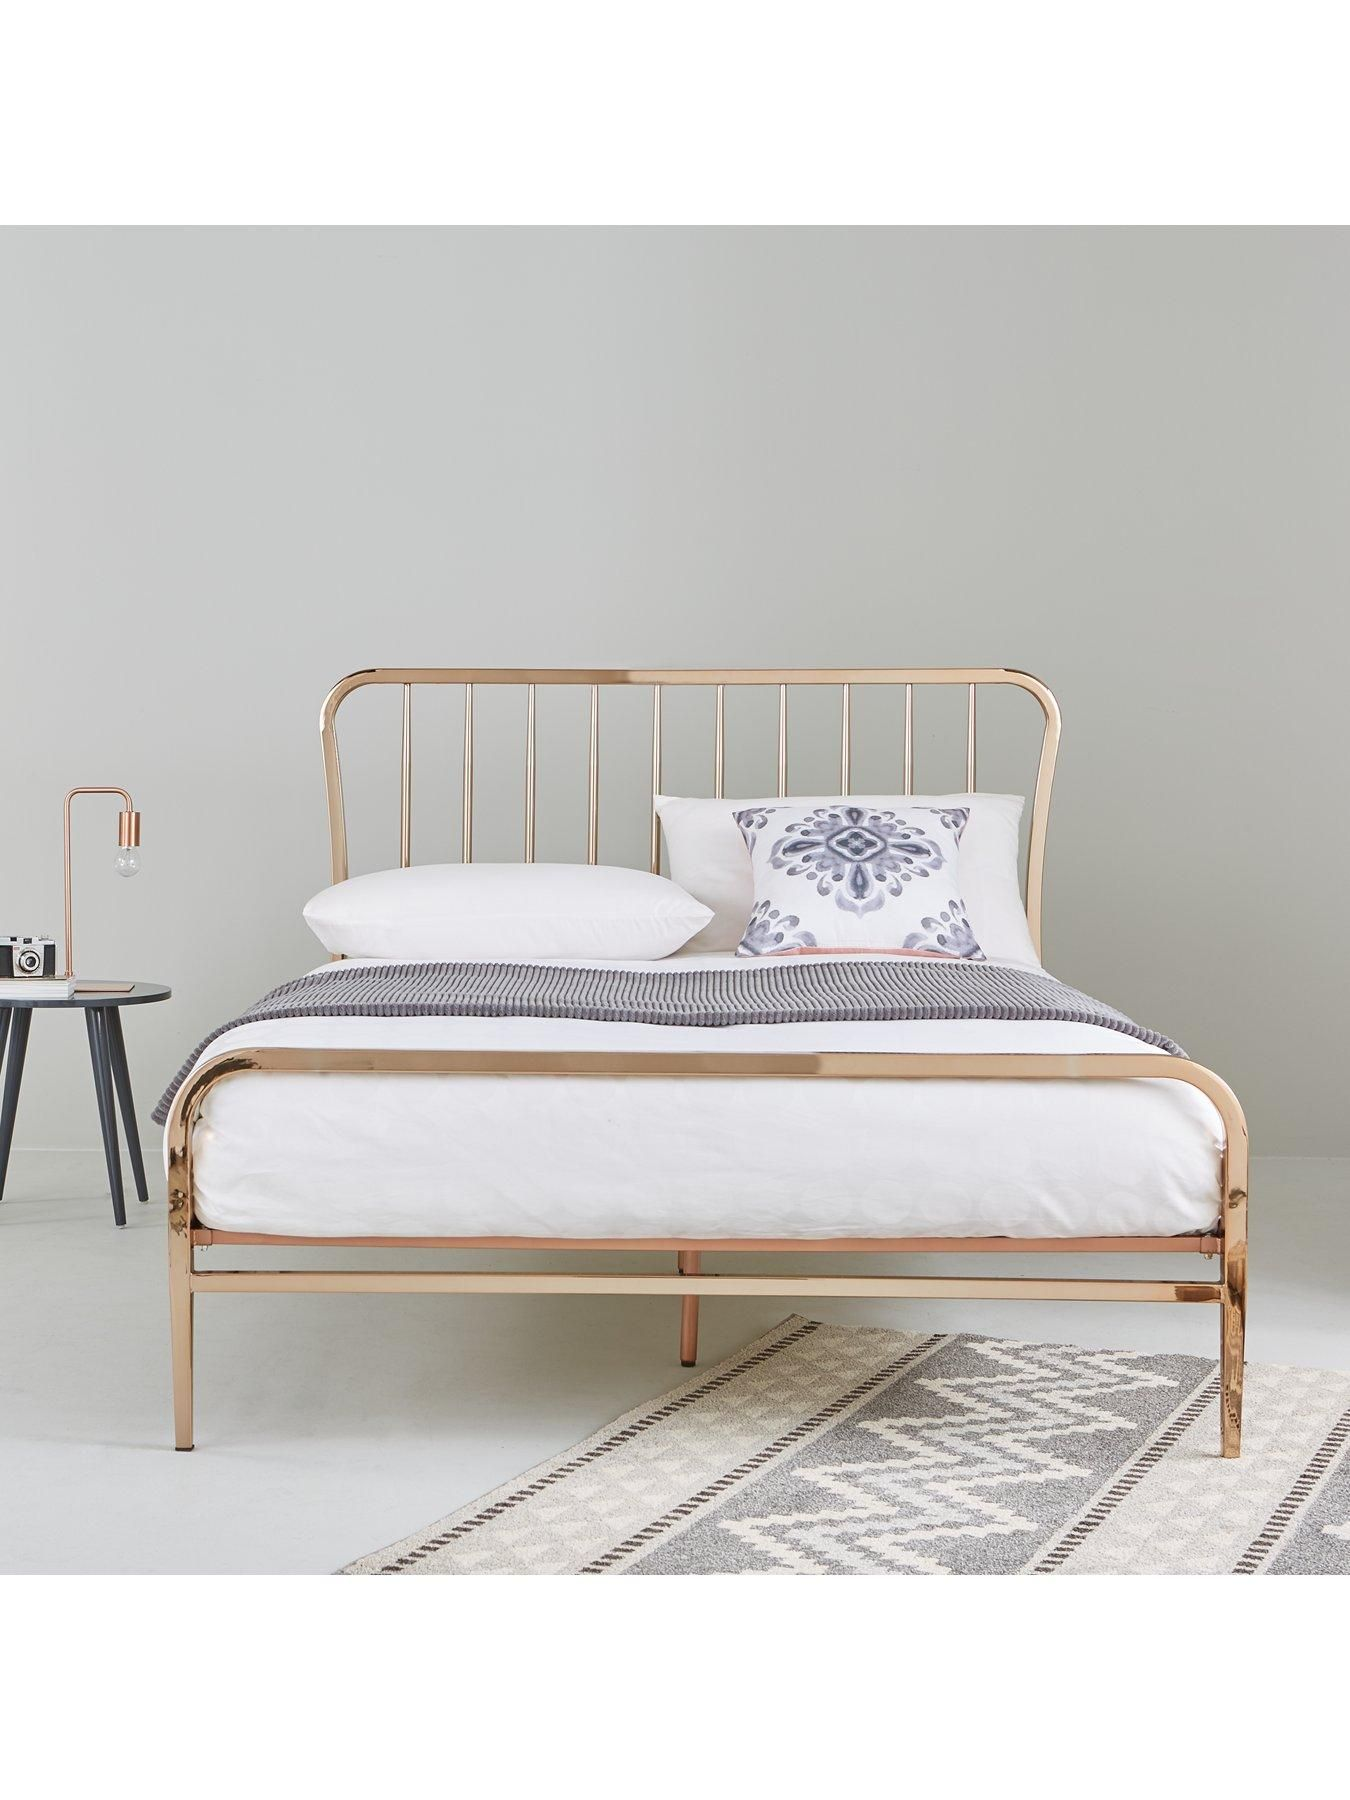 Ideal Home Webster Metal Double Bed Frame | home | Pinterest ...